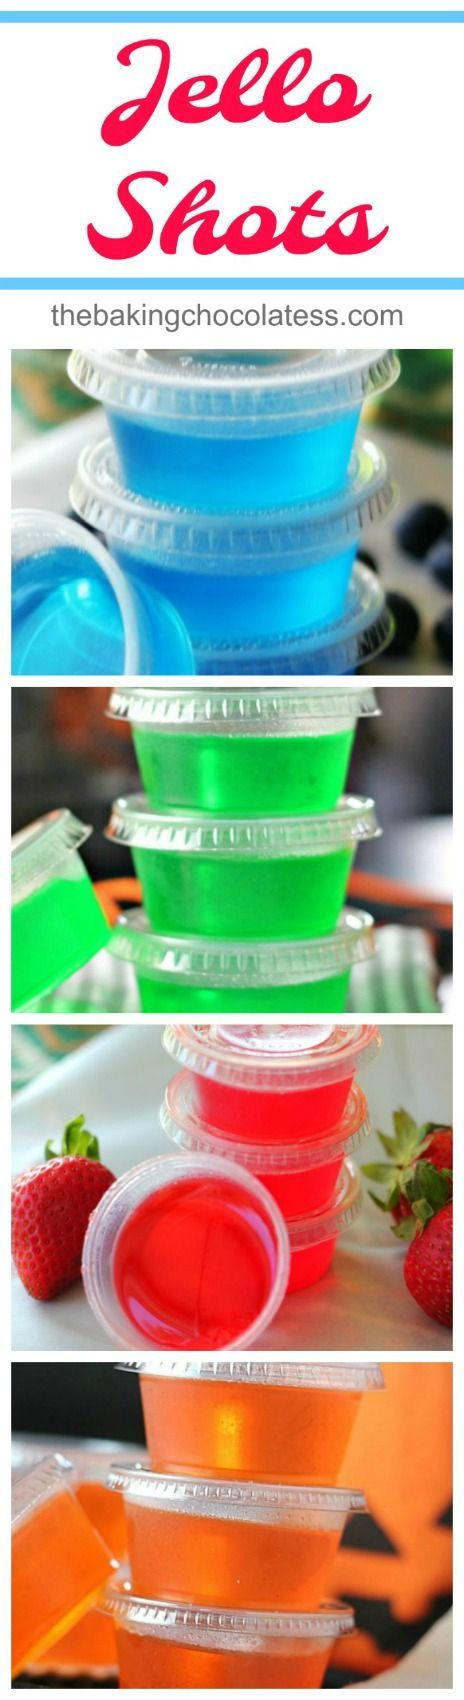 Jell-O Shots - Jell-O shots are easy to make.  All you do is add one small package of your favorite Jell-O to 1 cup boiling water or juice, whisking well and then add 1 cup of your choice of alcohol.   It's Party Time and fun times! via @https://www.pinterest.com/BaknChocolaTess/